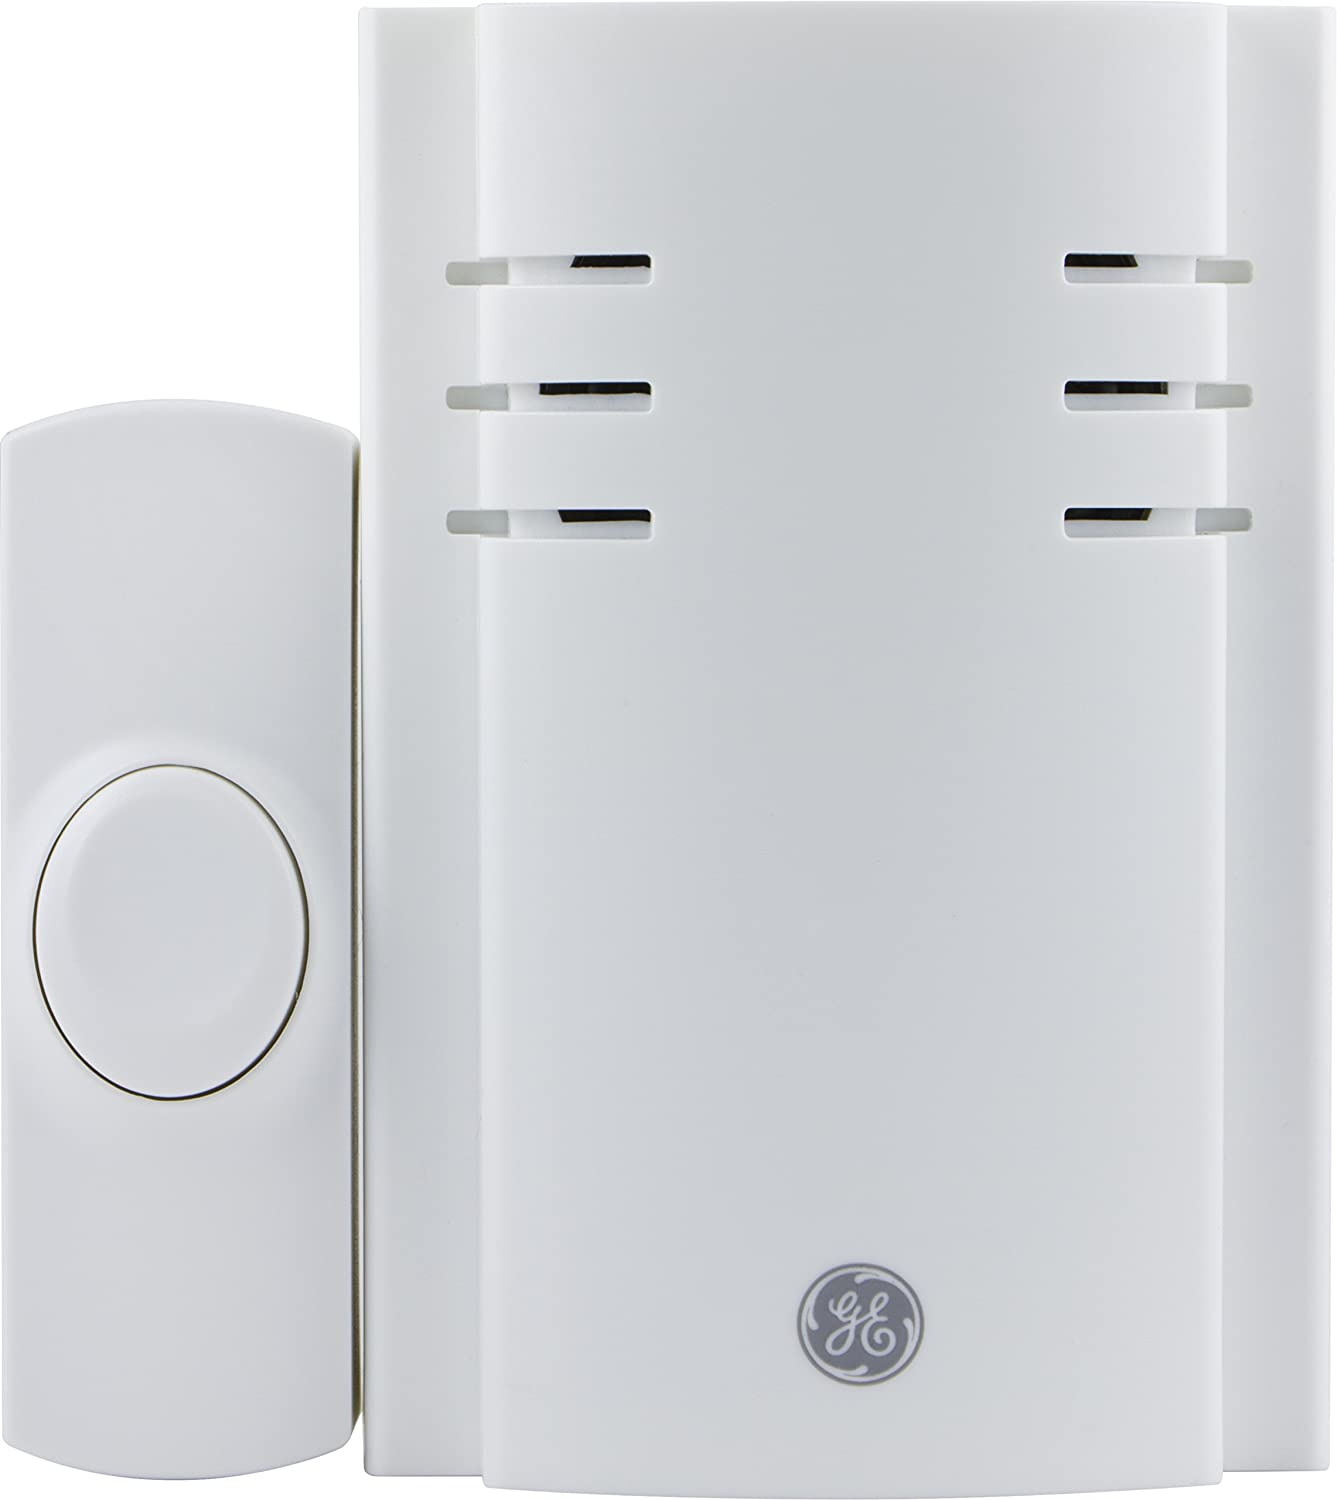 GE Wireless Plug-In Door Chime with One Push Button (2 Pack), 19298